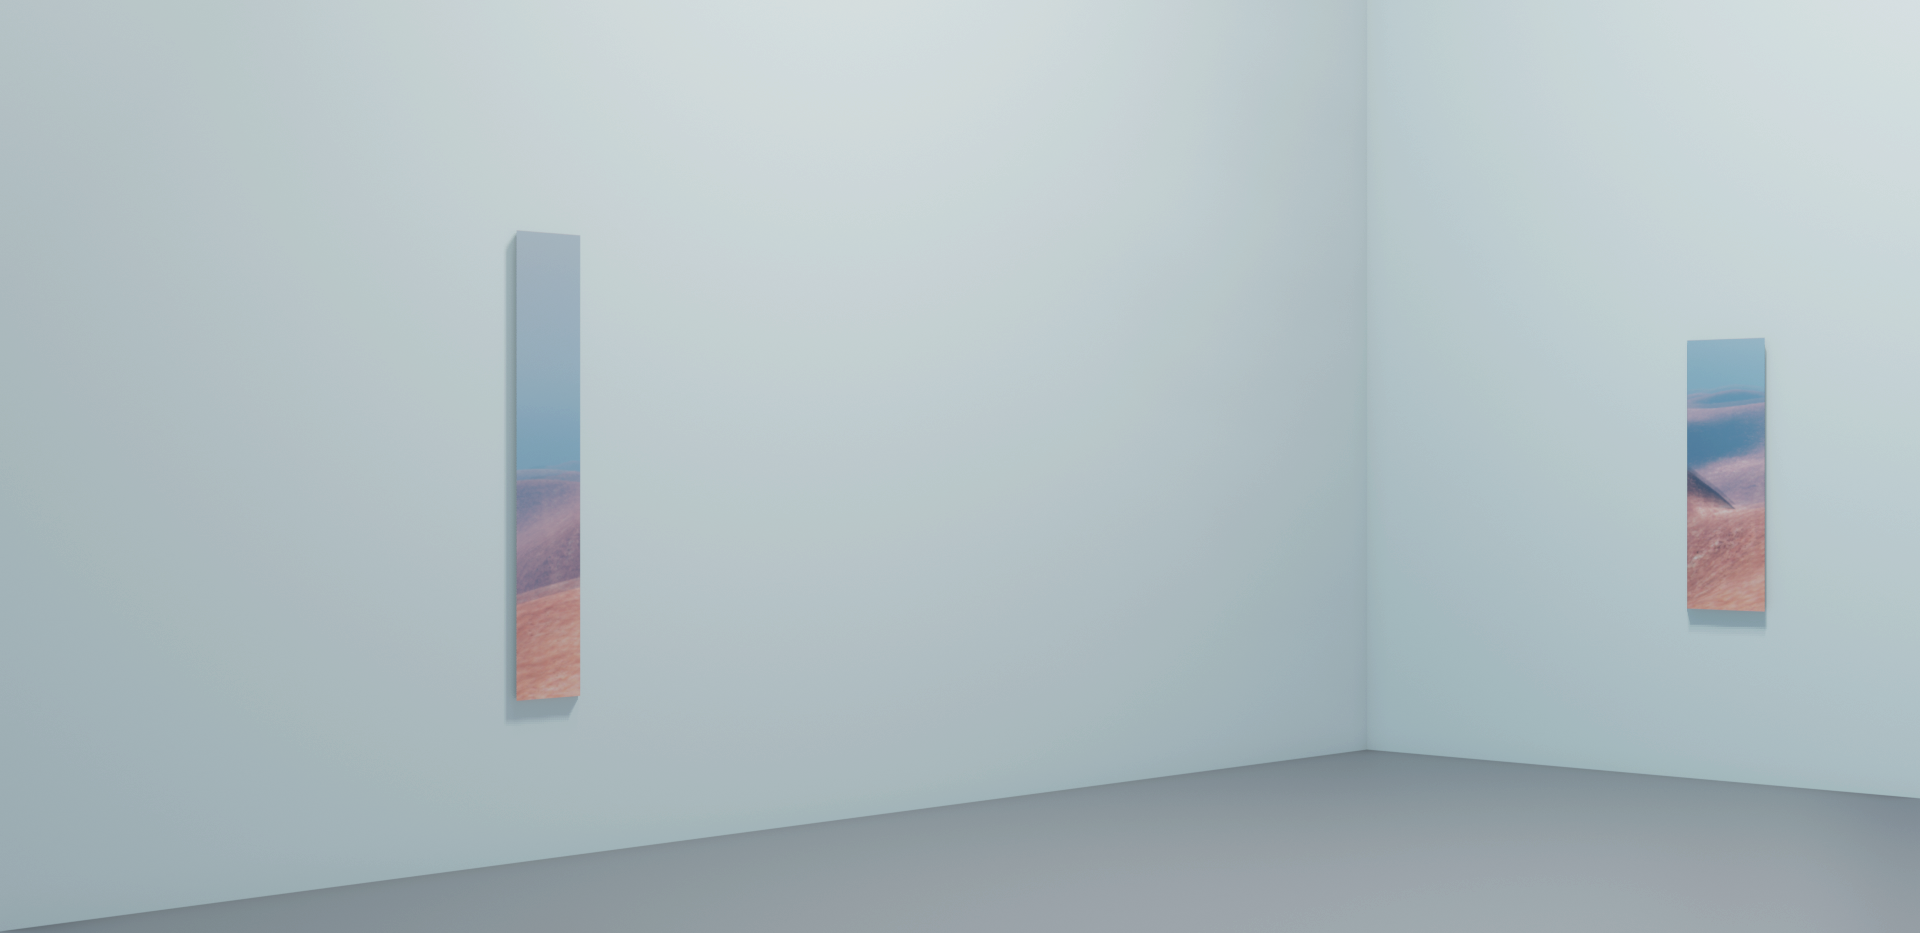 rendered_installation_view [left wall]